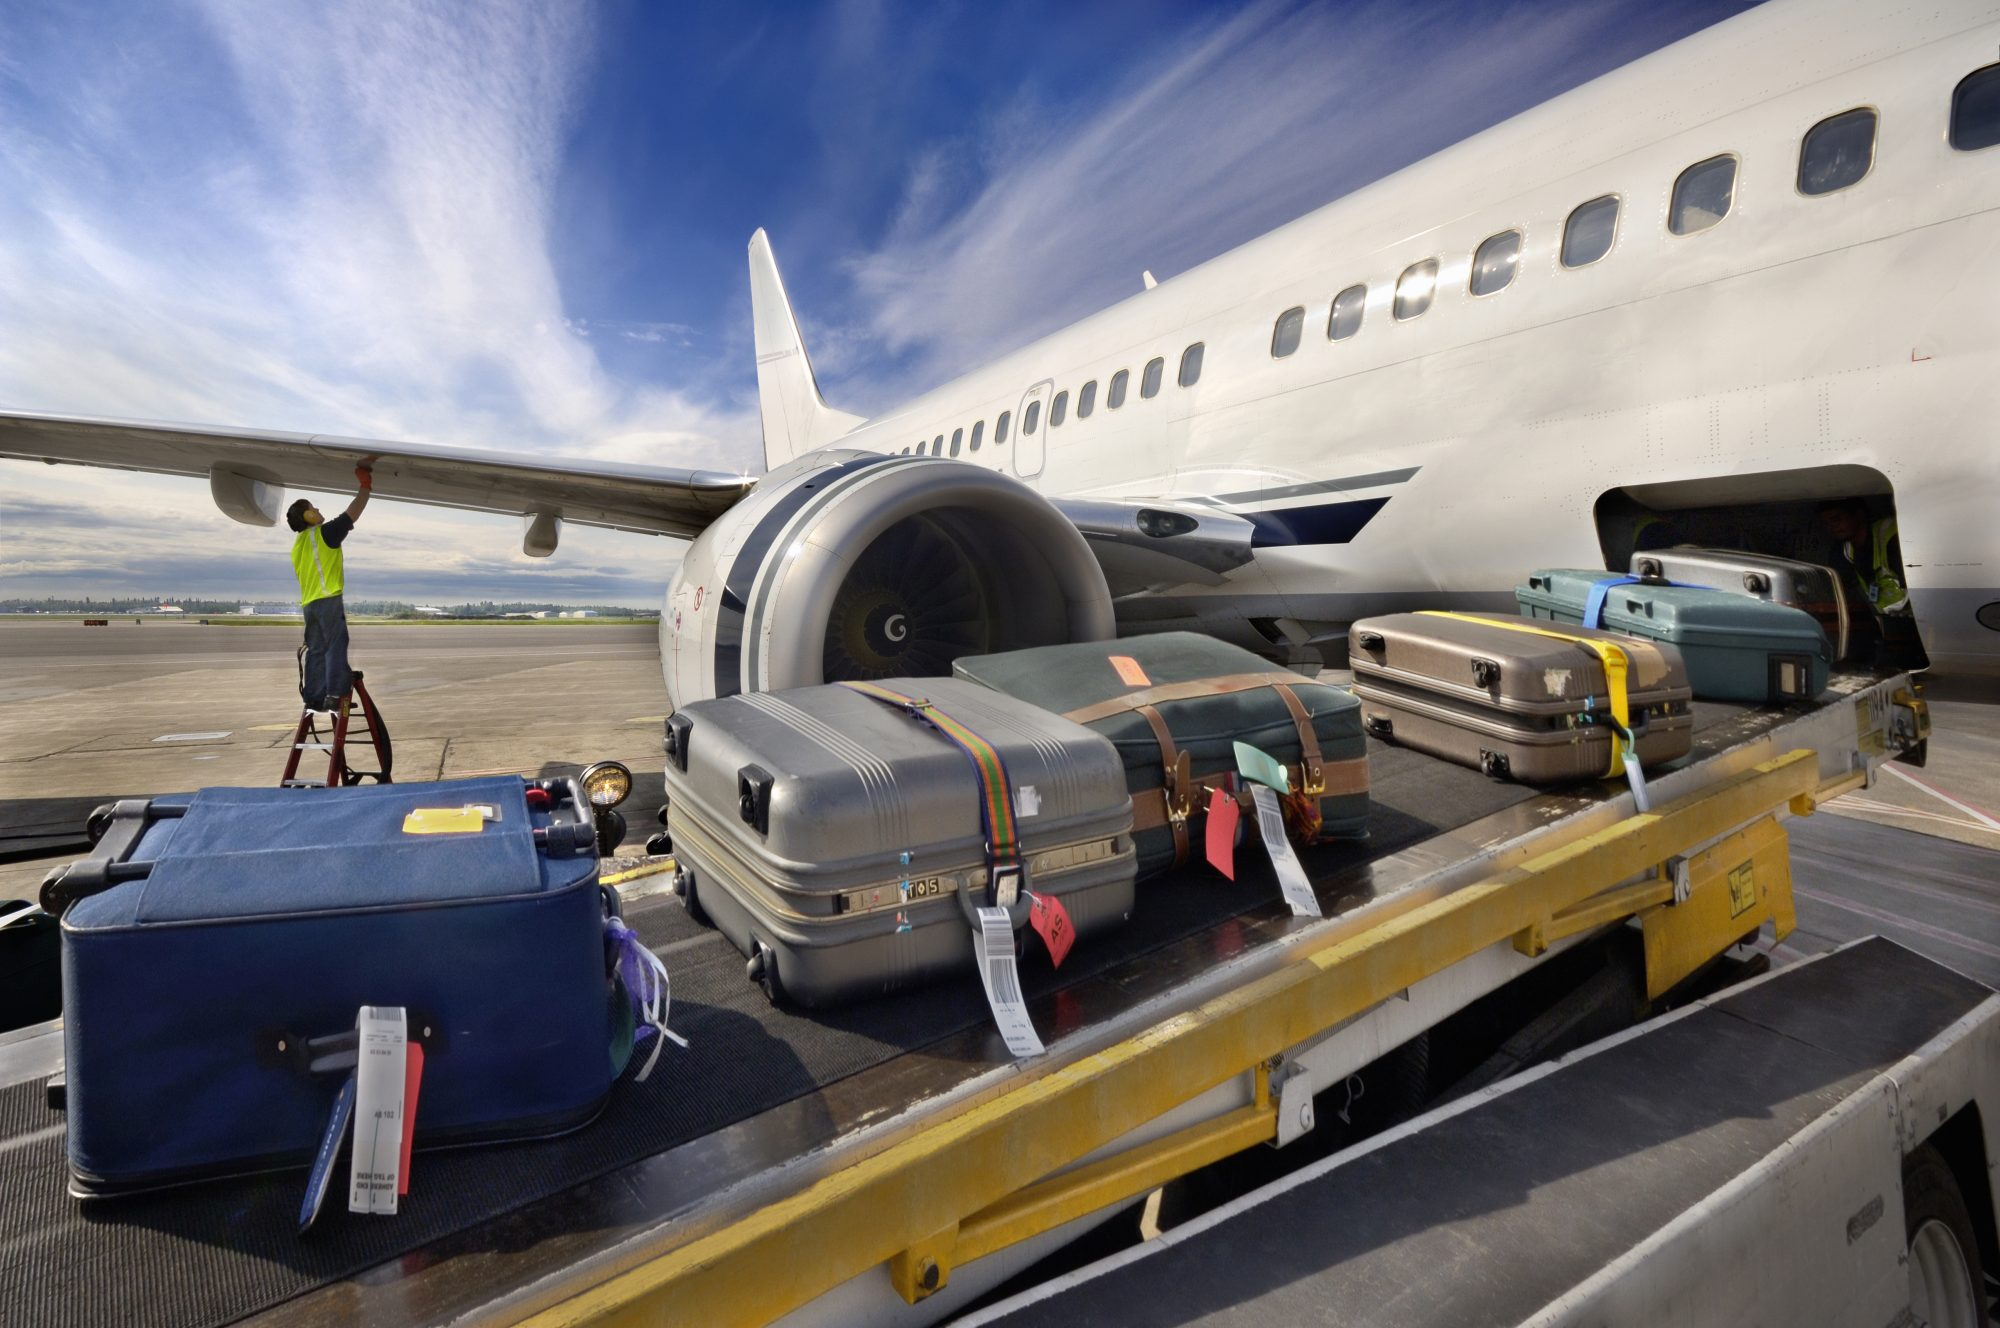 Luggage Loading onto Plane